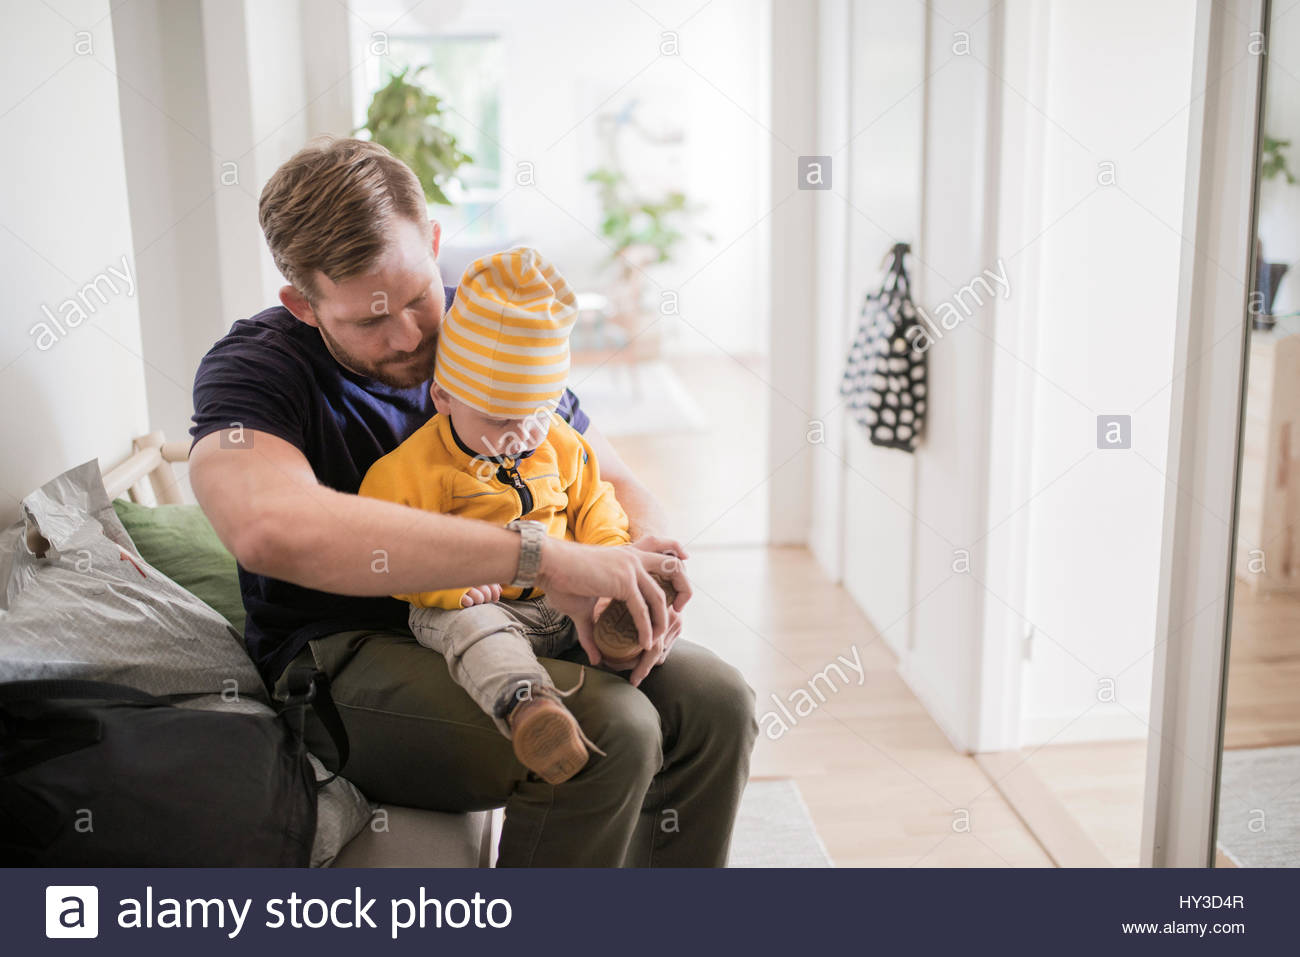 Sweden, Father sitting and undressing son (12-17 months) - Stock Image